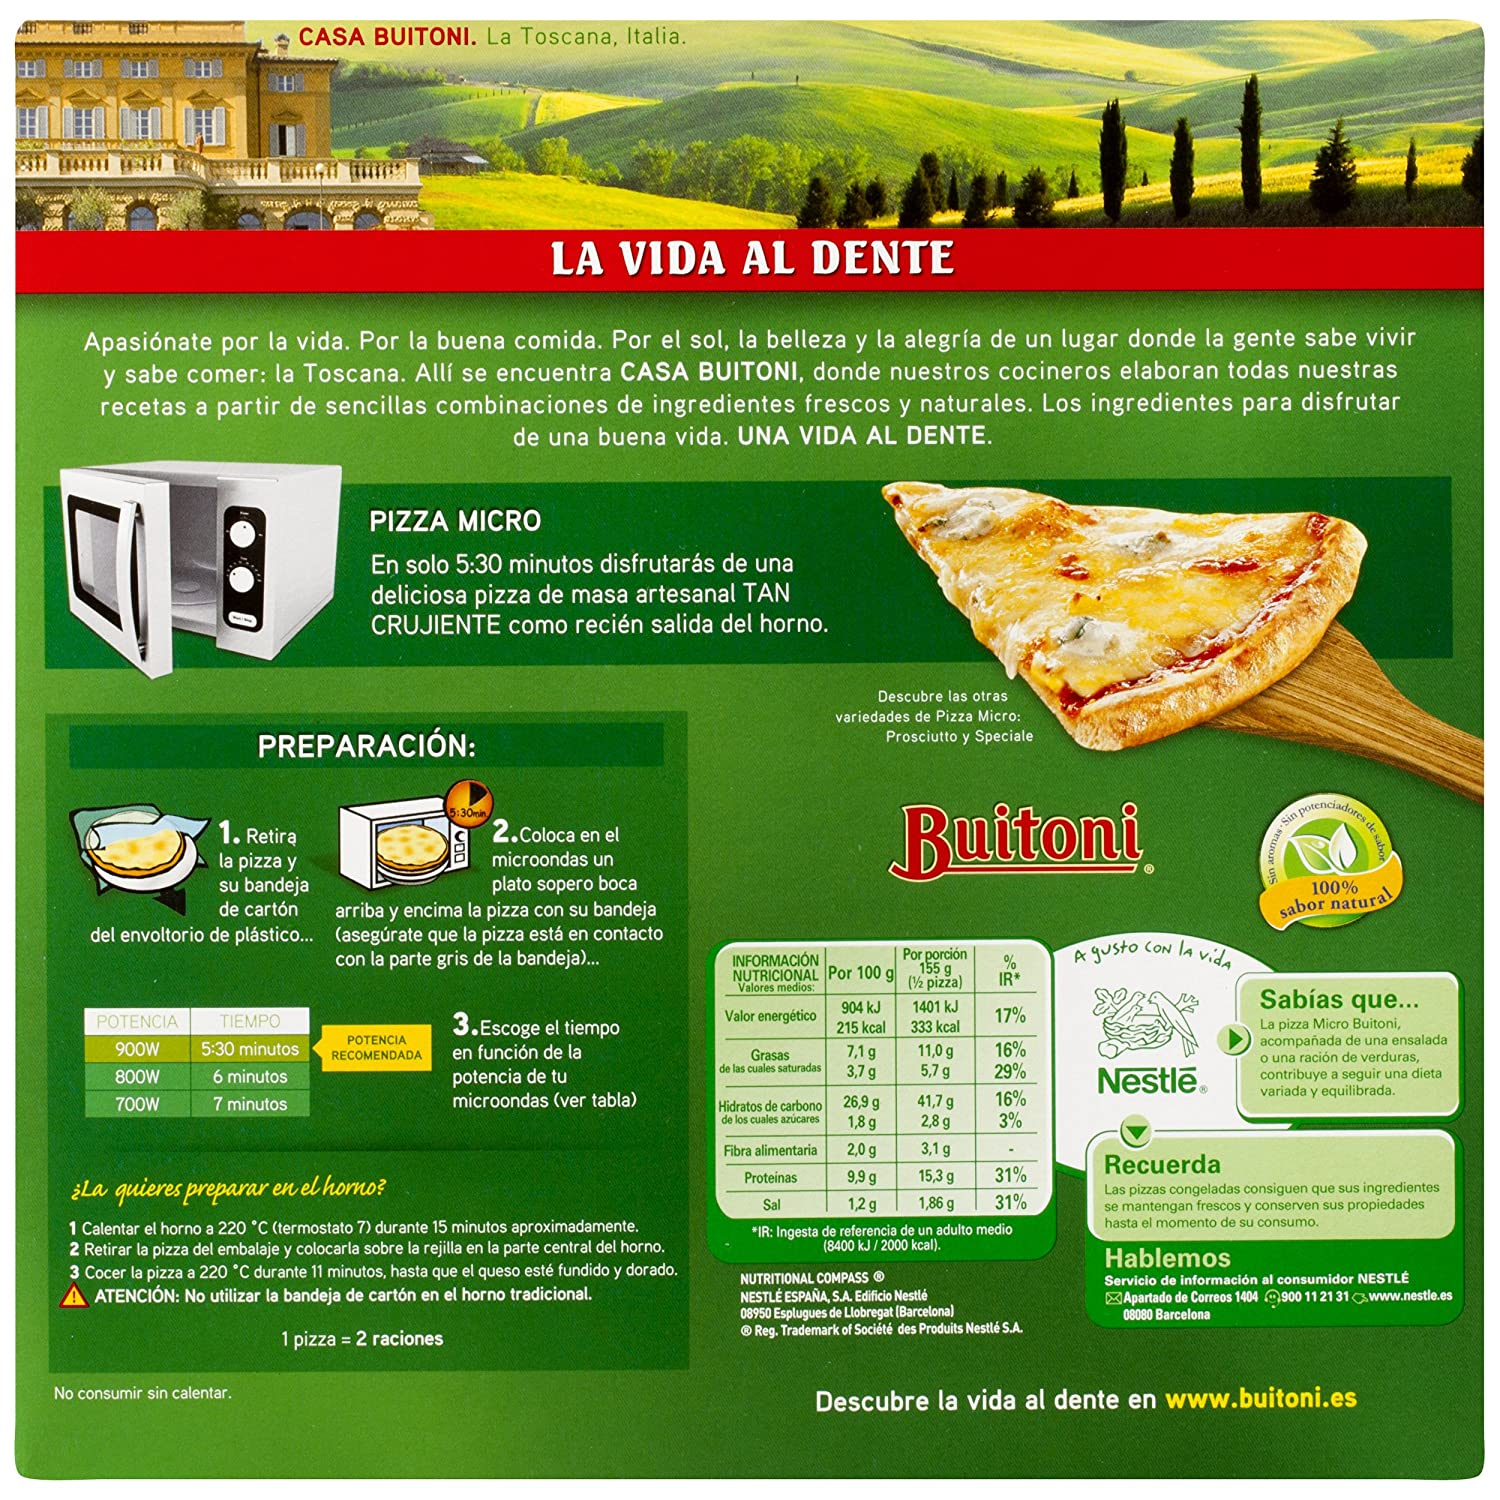 Buitoni 4 Quesos Pizza Microondas - 310 gr: Amazon.es ...